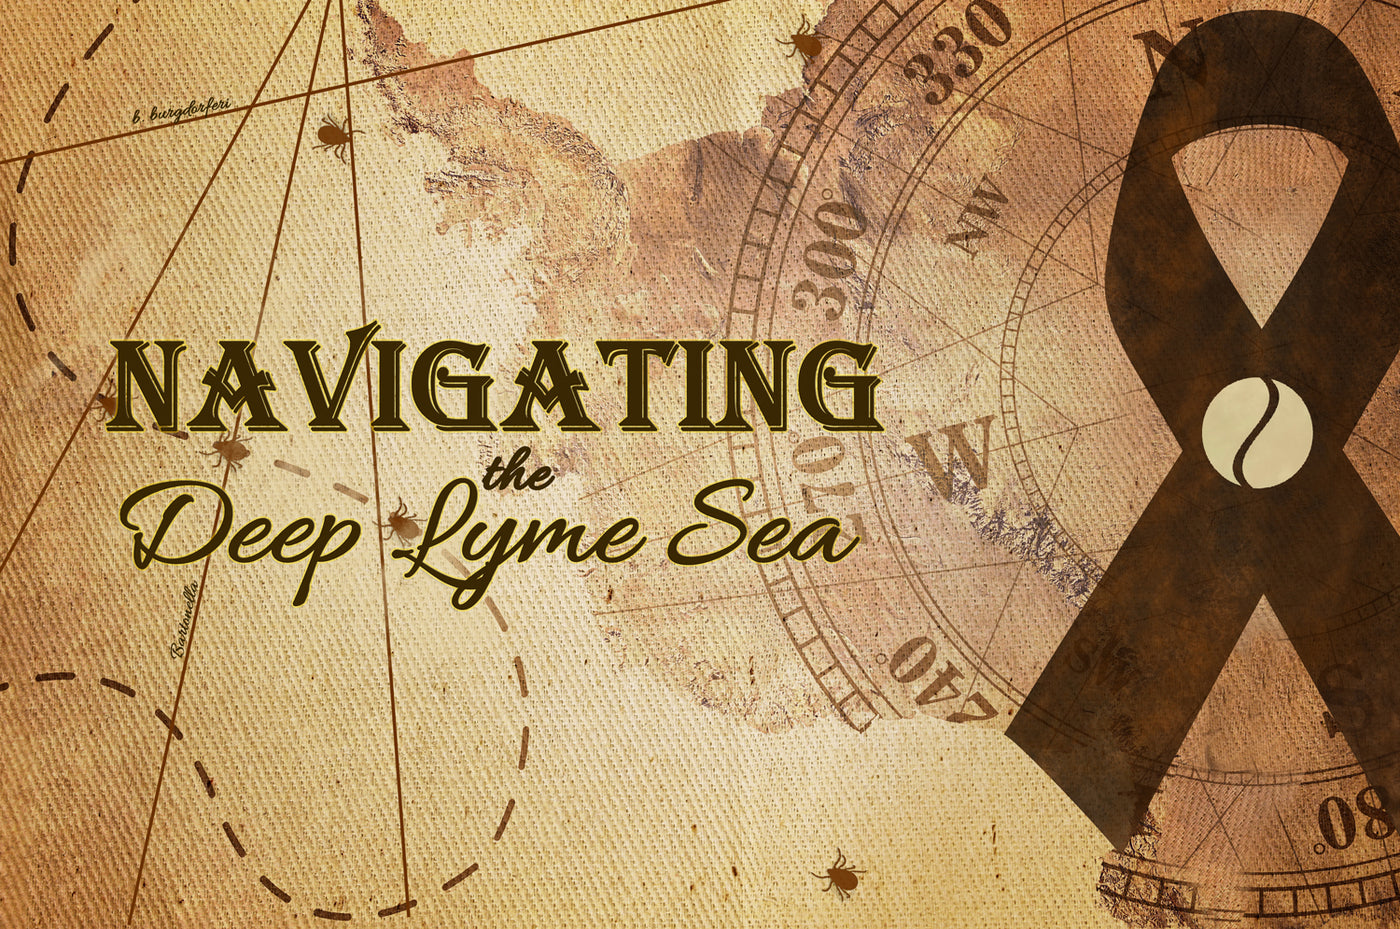 Blogpost 011 – Navigating the Deep Lyme Sea